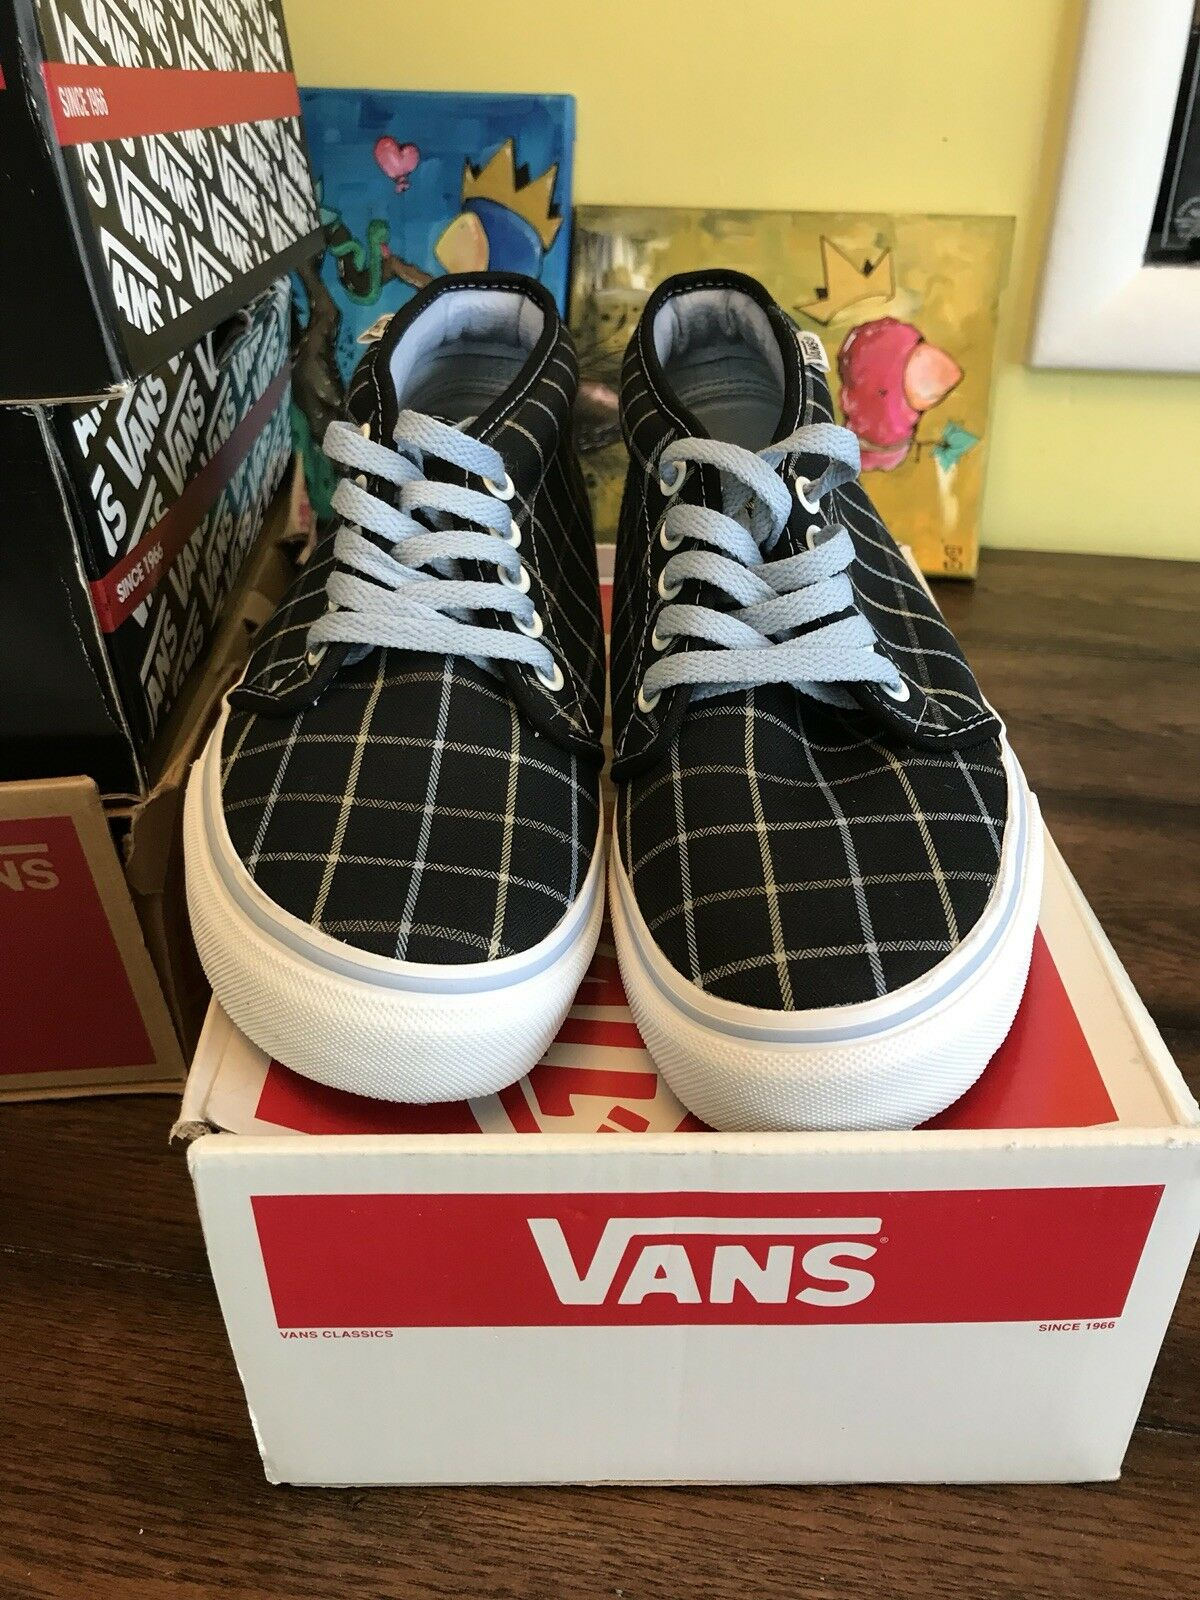 06 Vans Chukka Boot Plaid  42